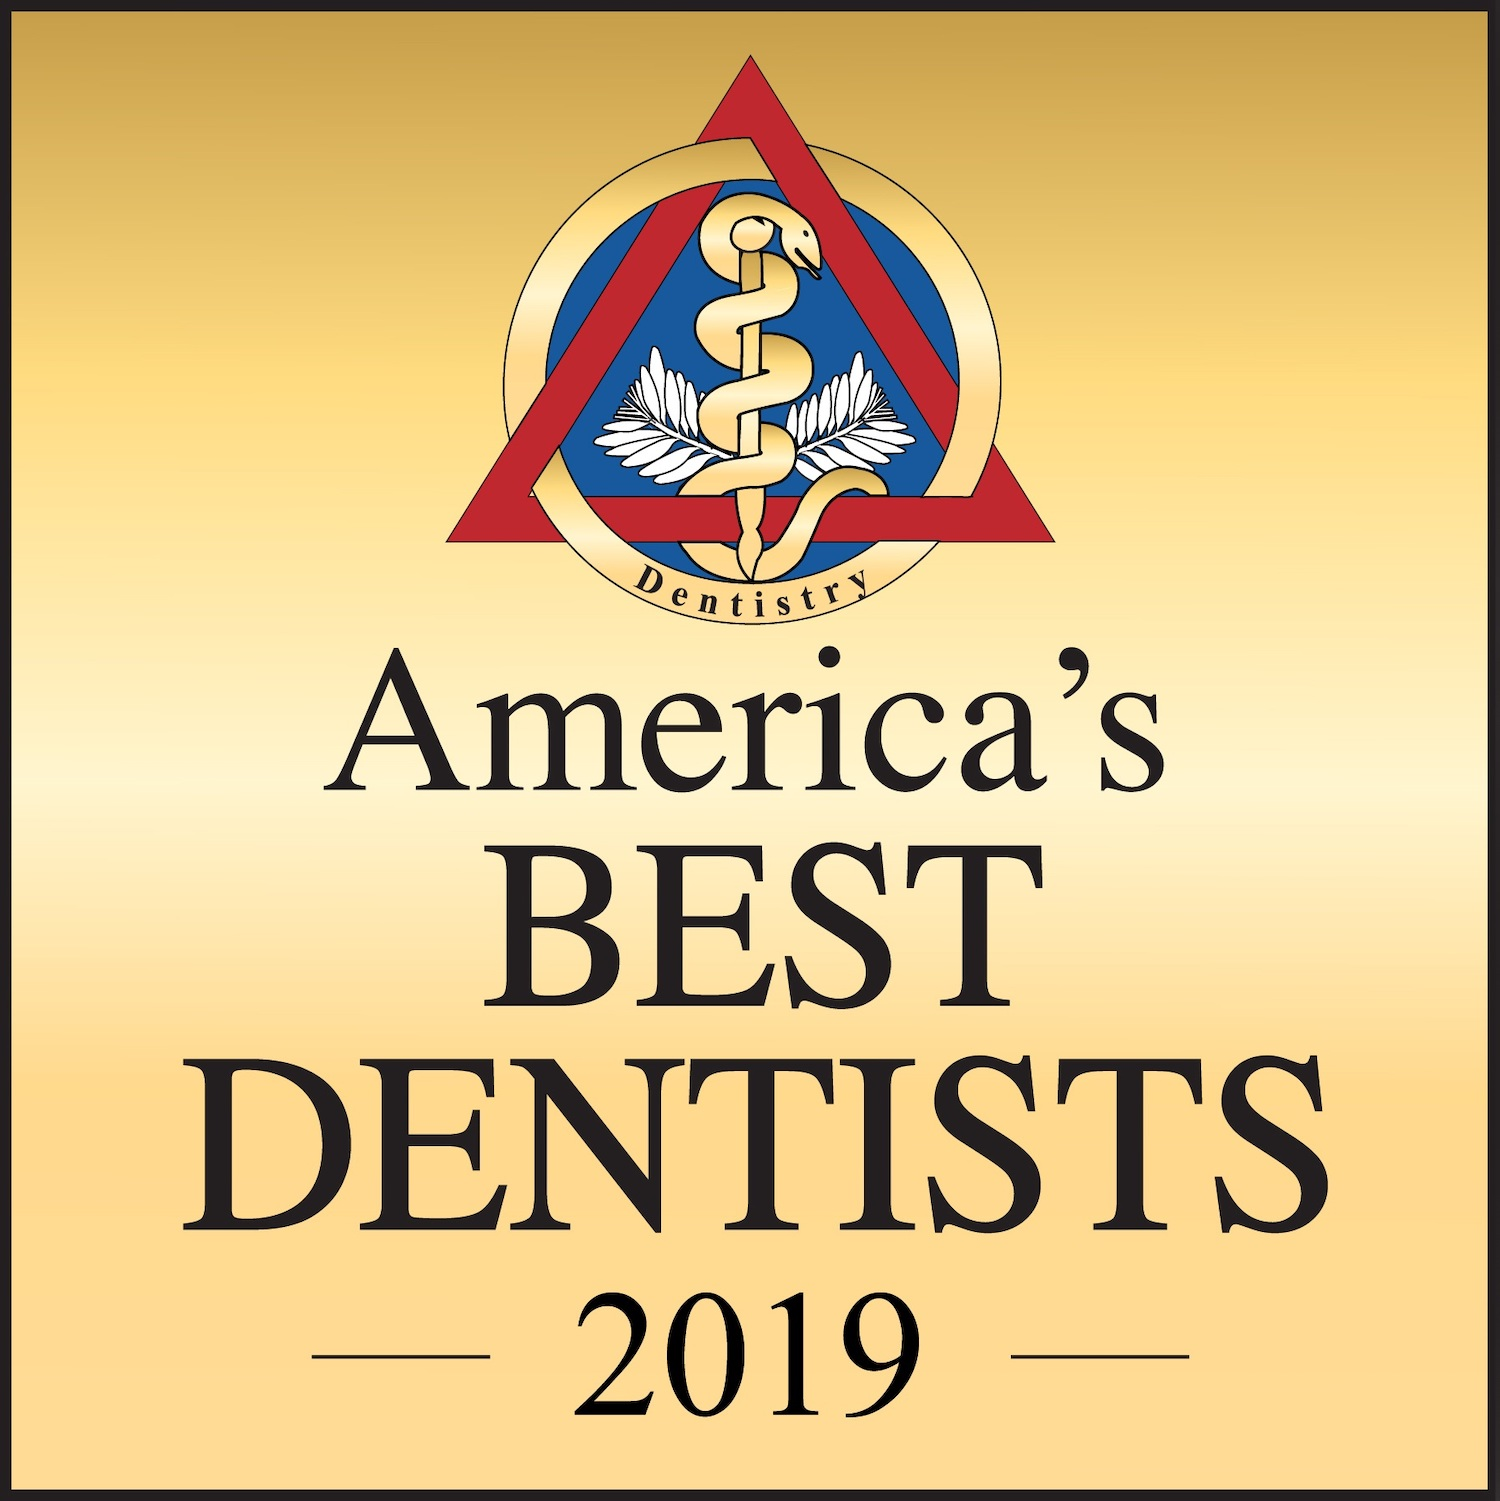 http___www.todaysbestdentists.com_downloads_fAwVhlgvsHW_logos_DentistSquare2019.jpg